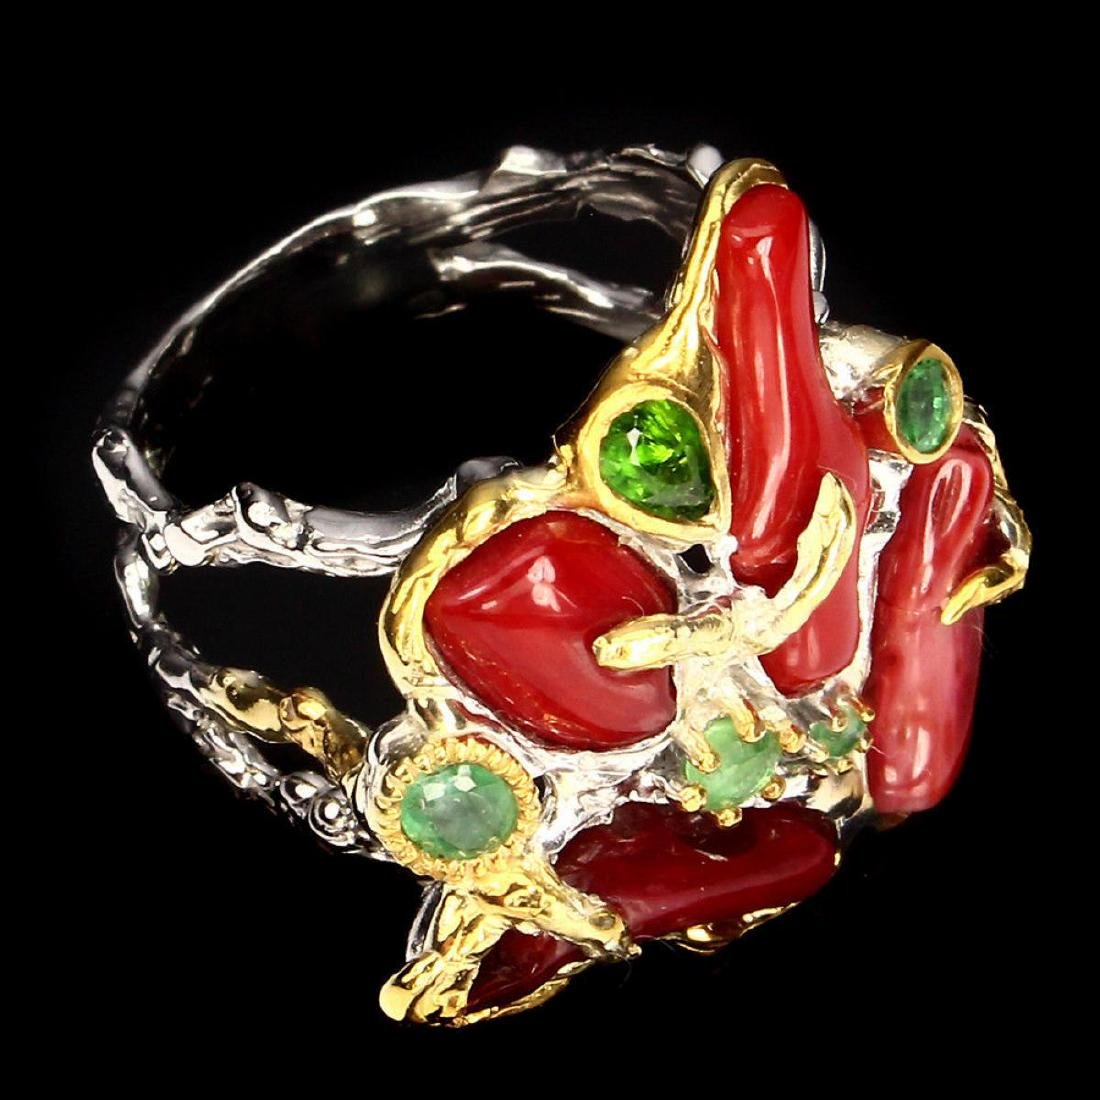 Natural 16x5 Mm Top Red Coral & Emerald Ring - 3